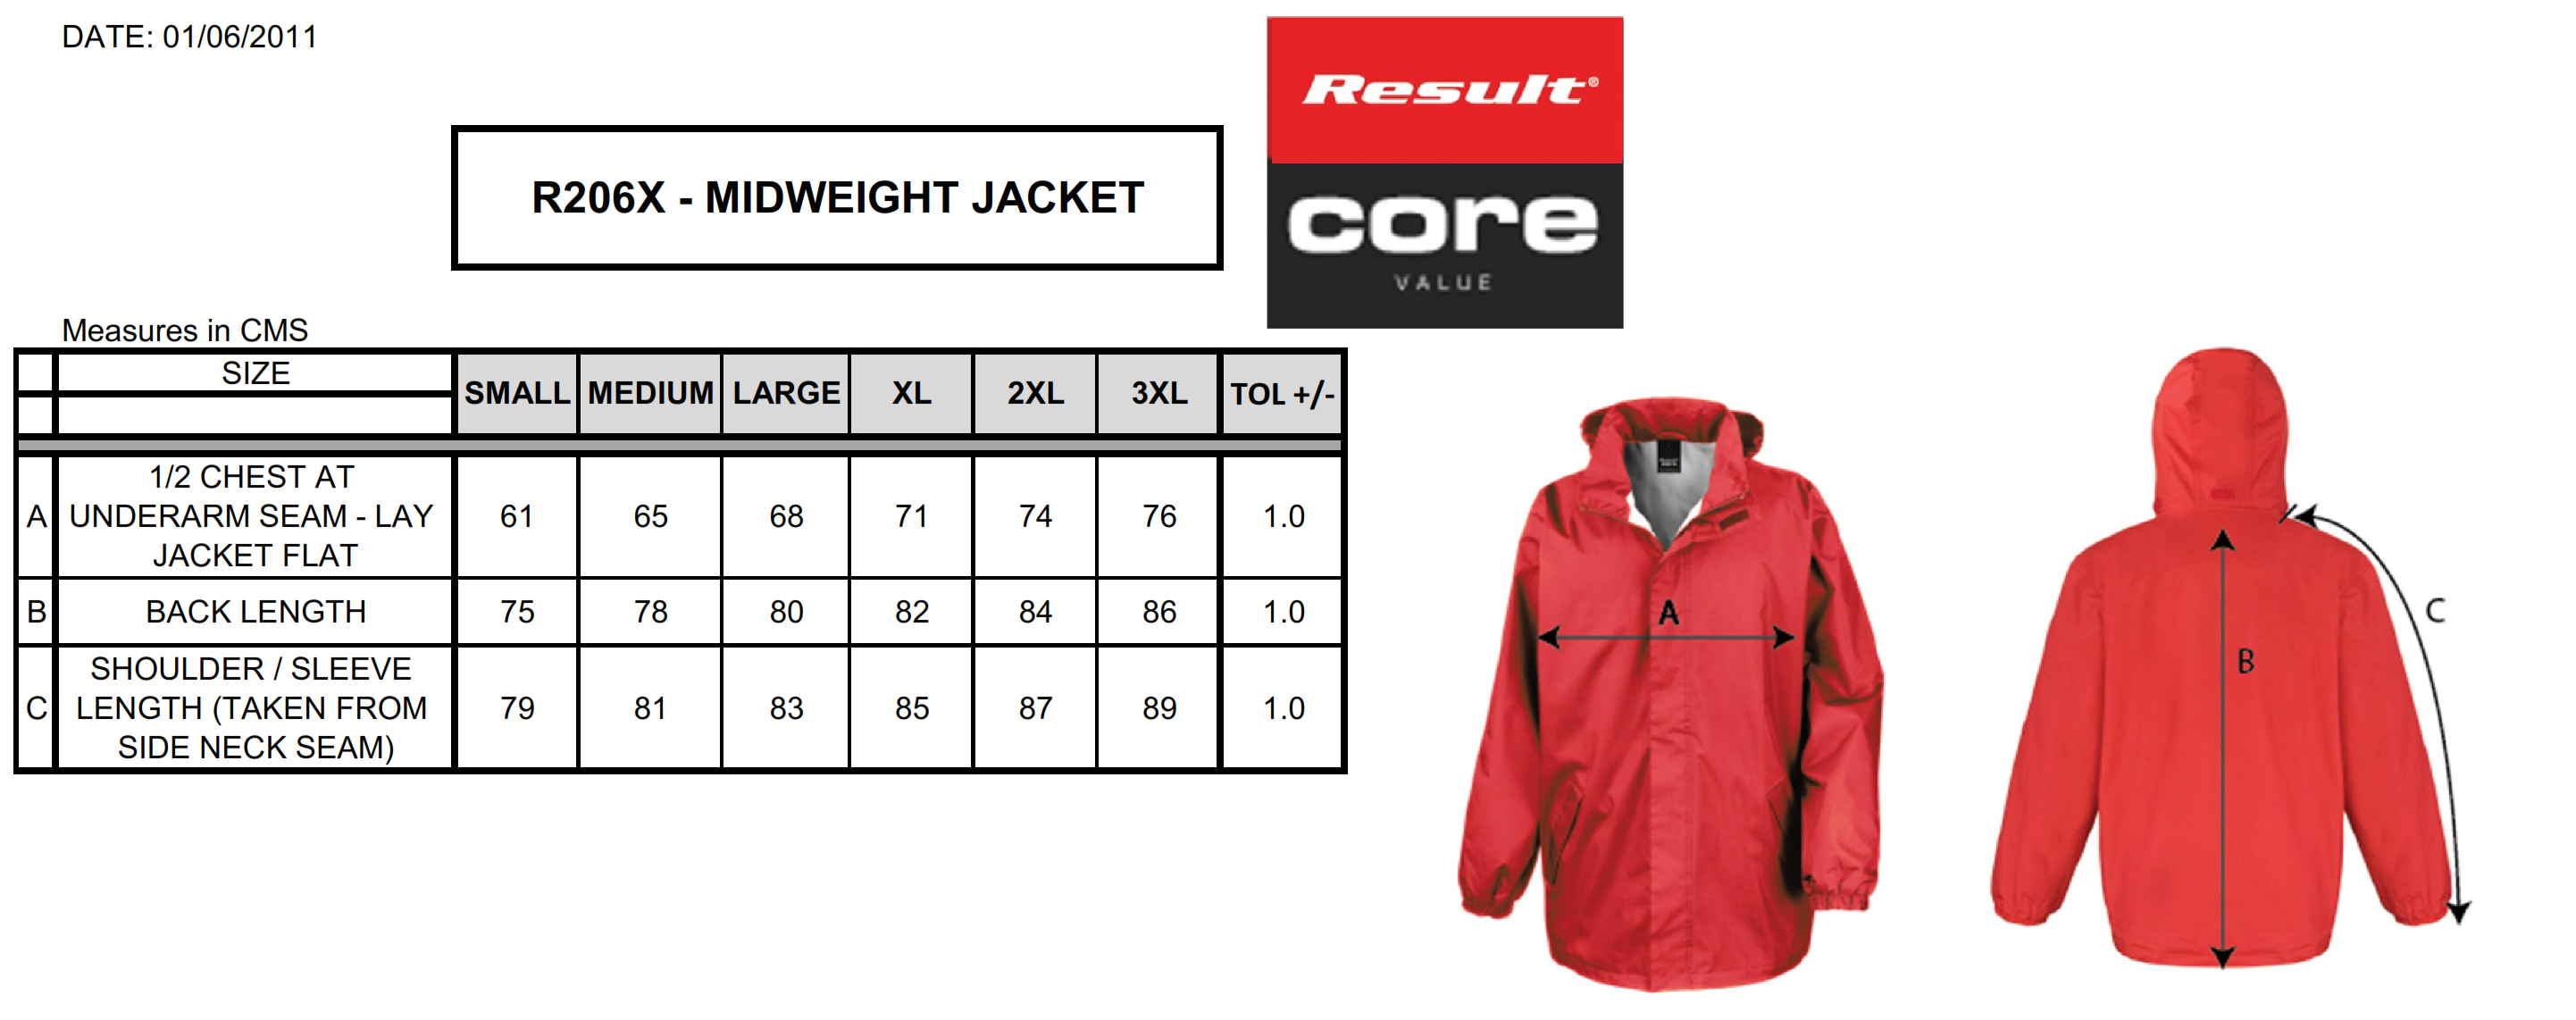 Result: Core Midweight Jacket R206X